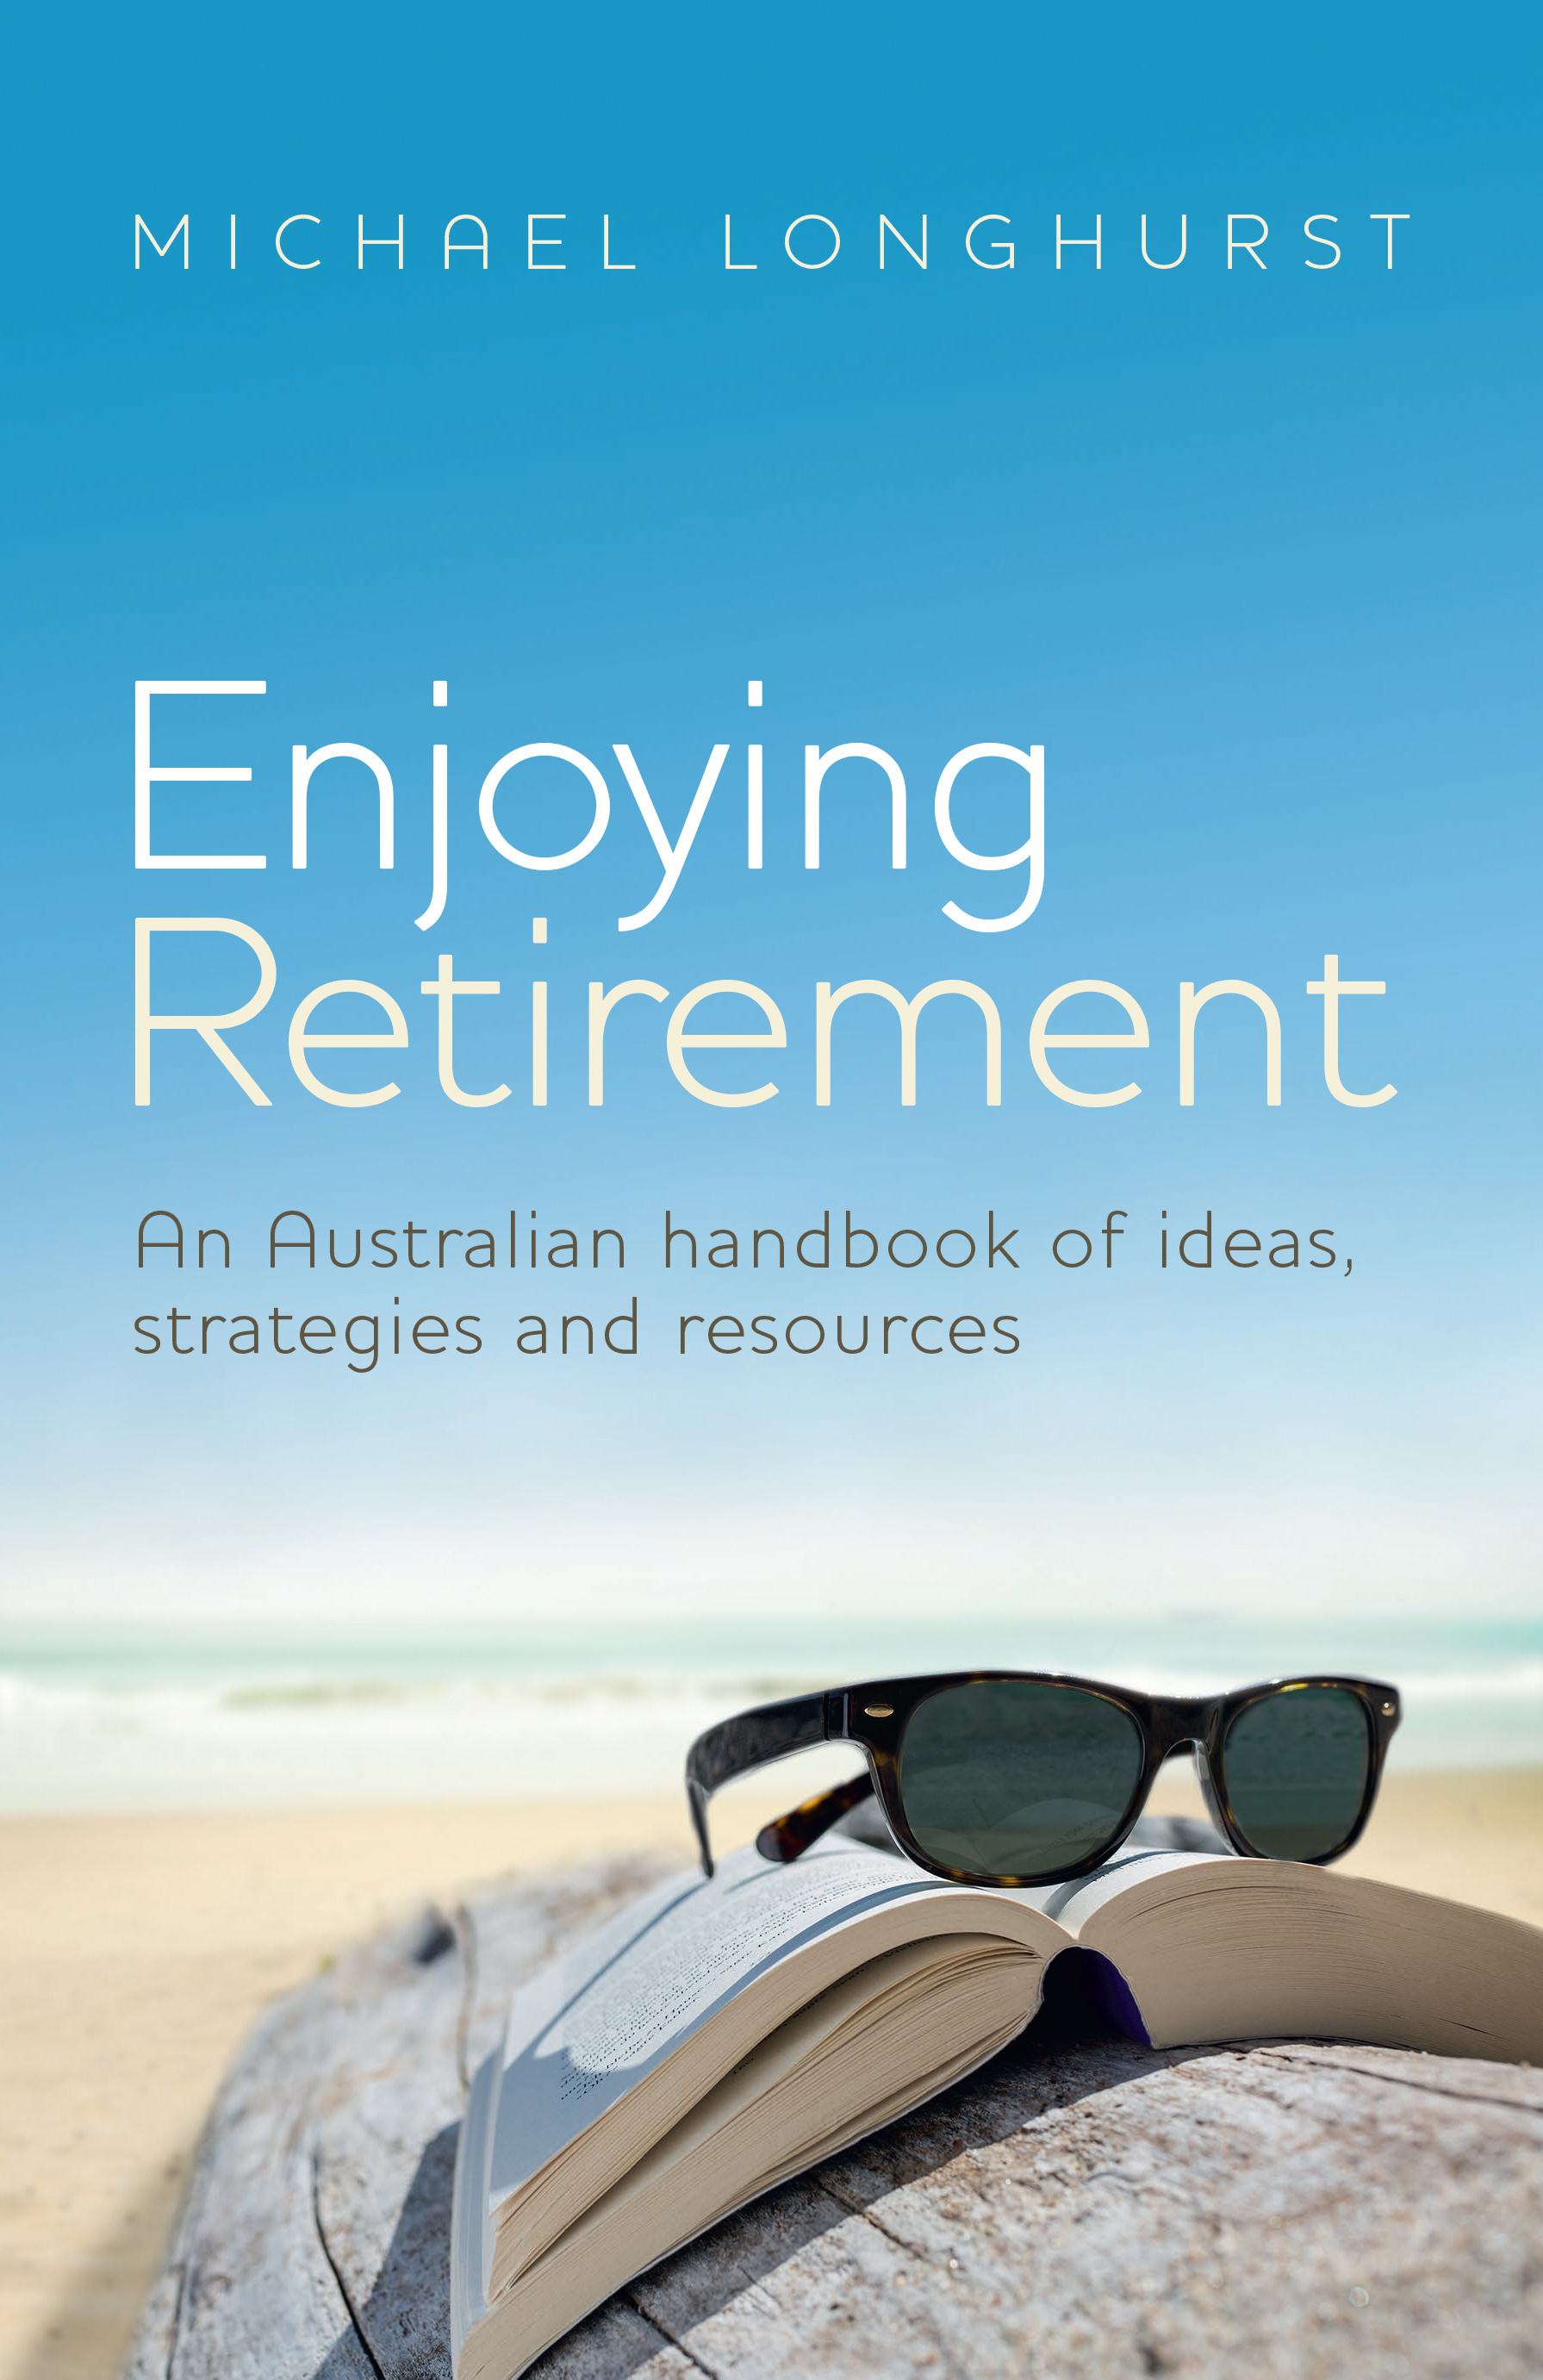 Enjoying Retirement By Michael Longhurst Queensland